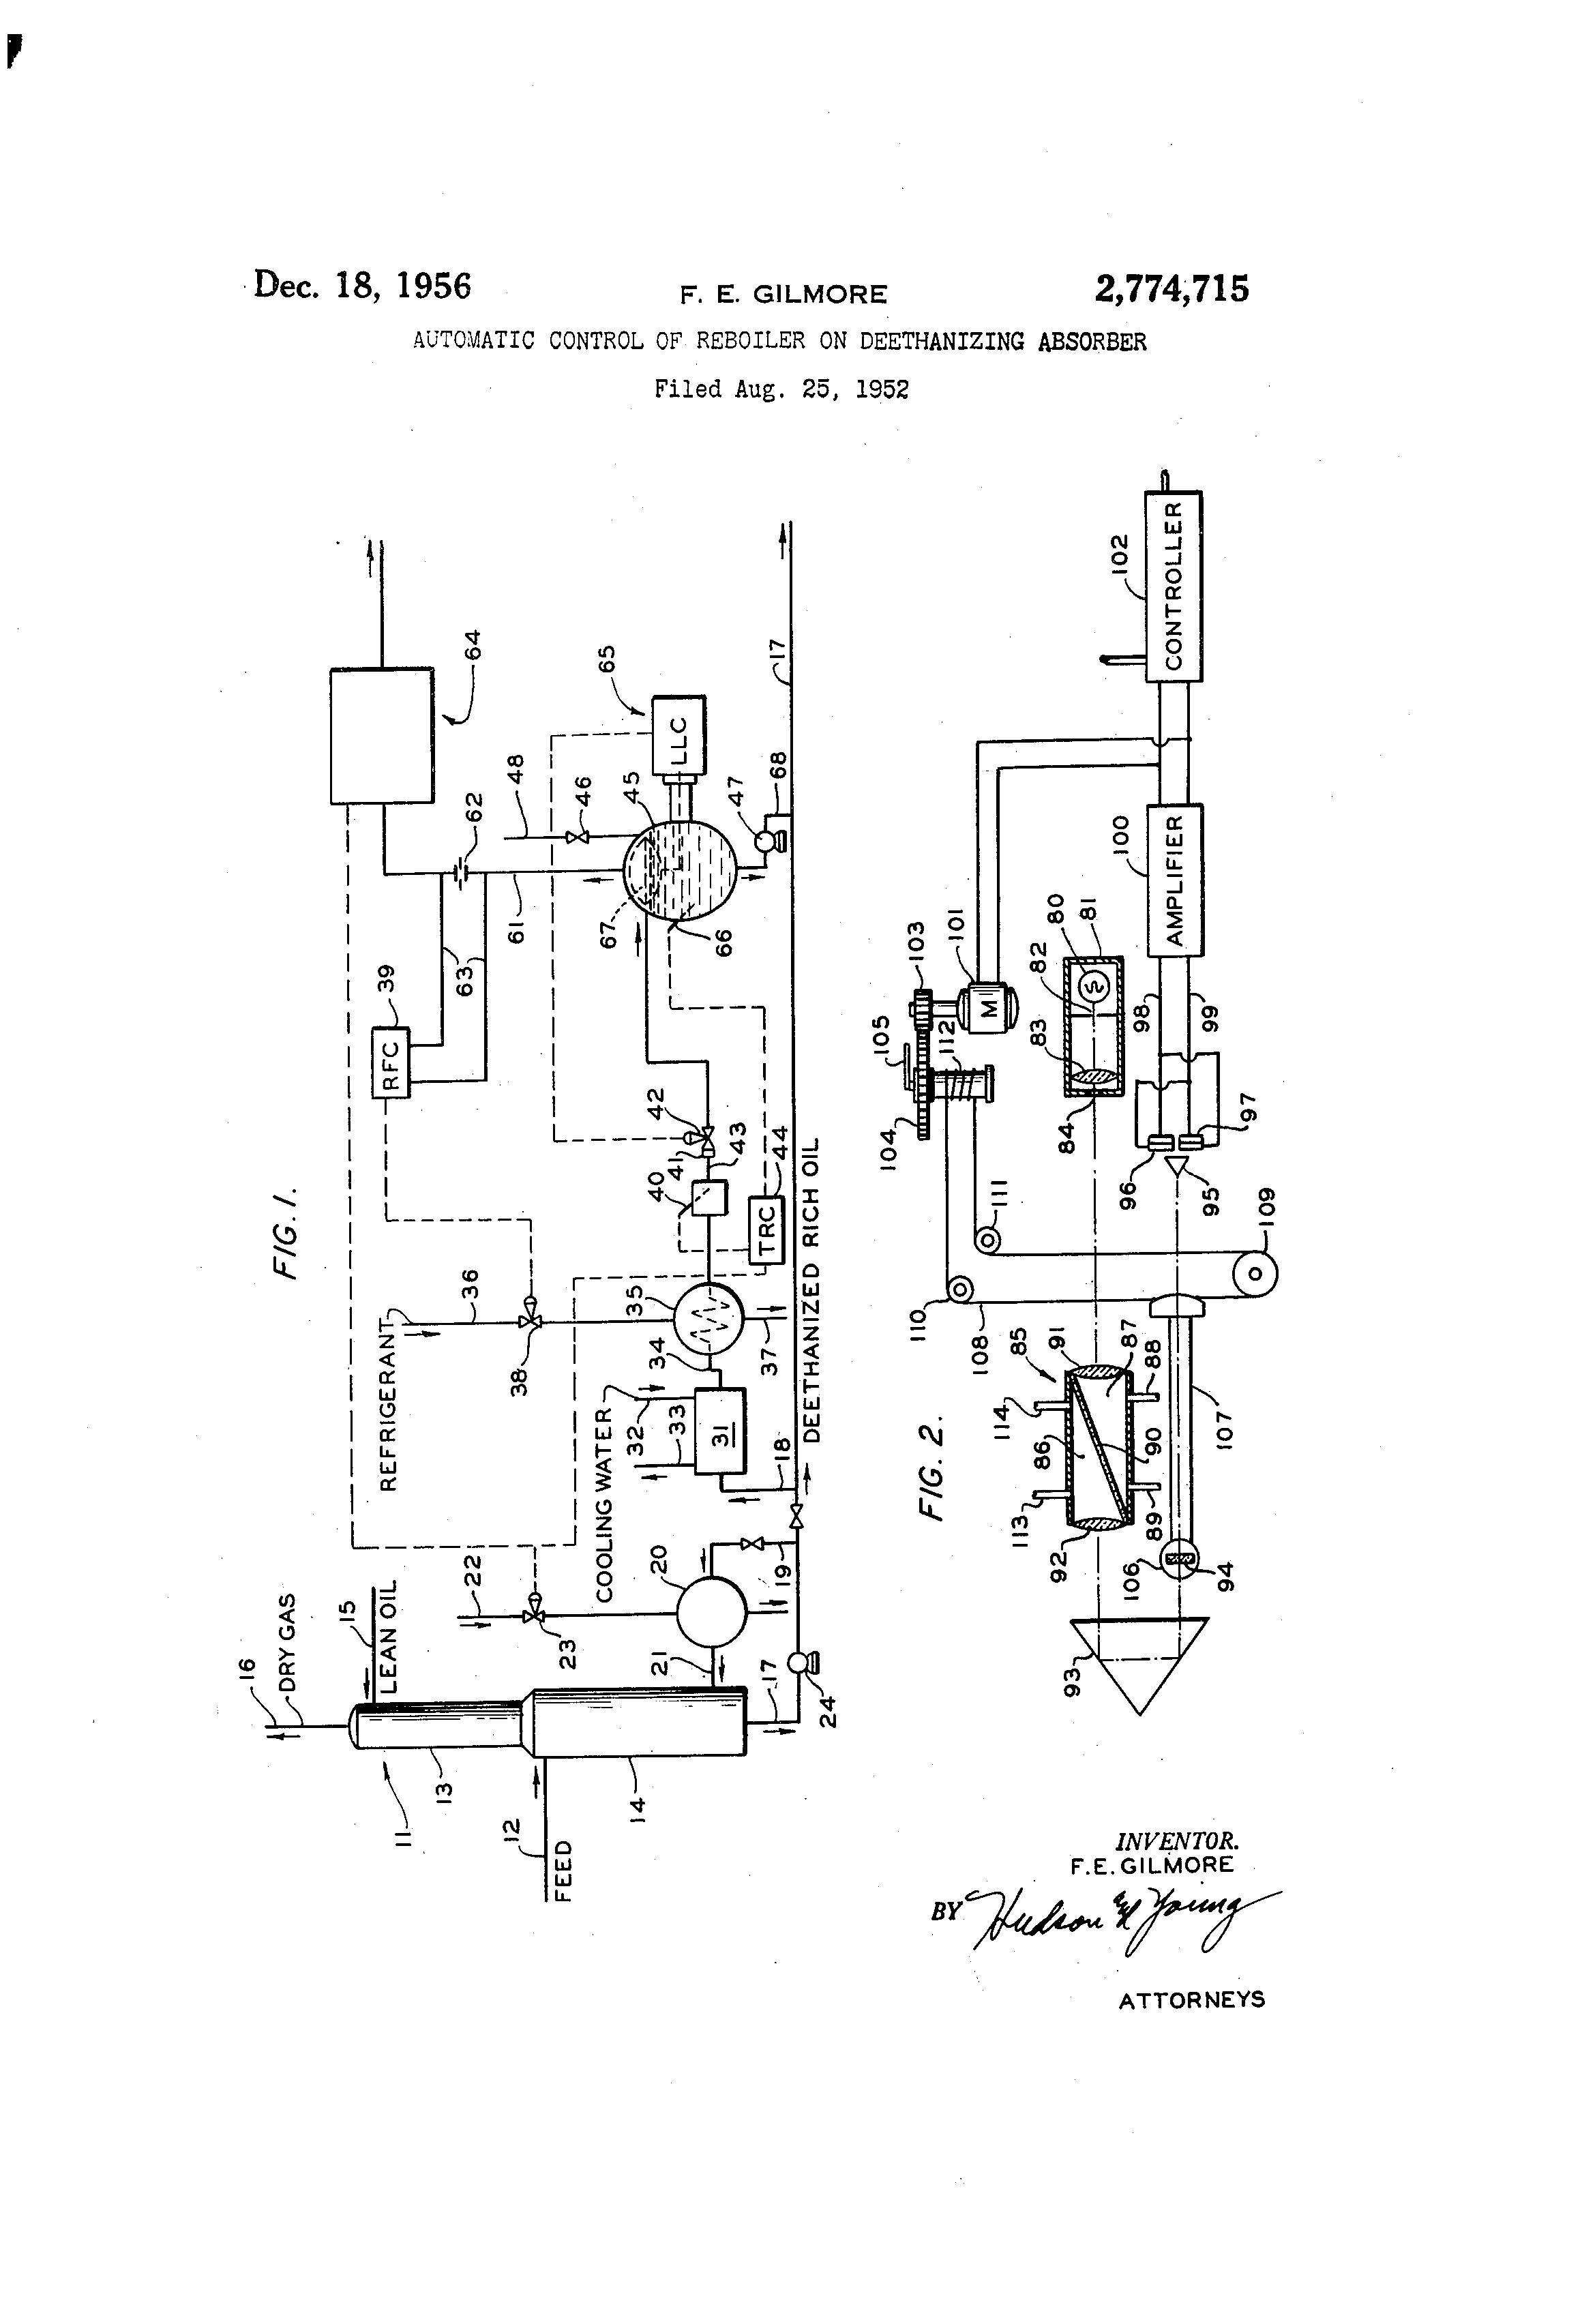 patent us2774715 - automatic control of reboiler on deethanizing absorber